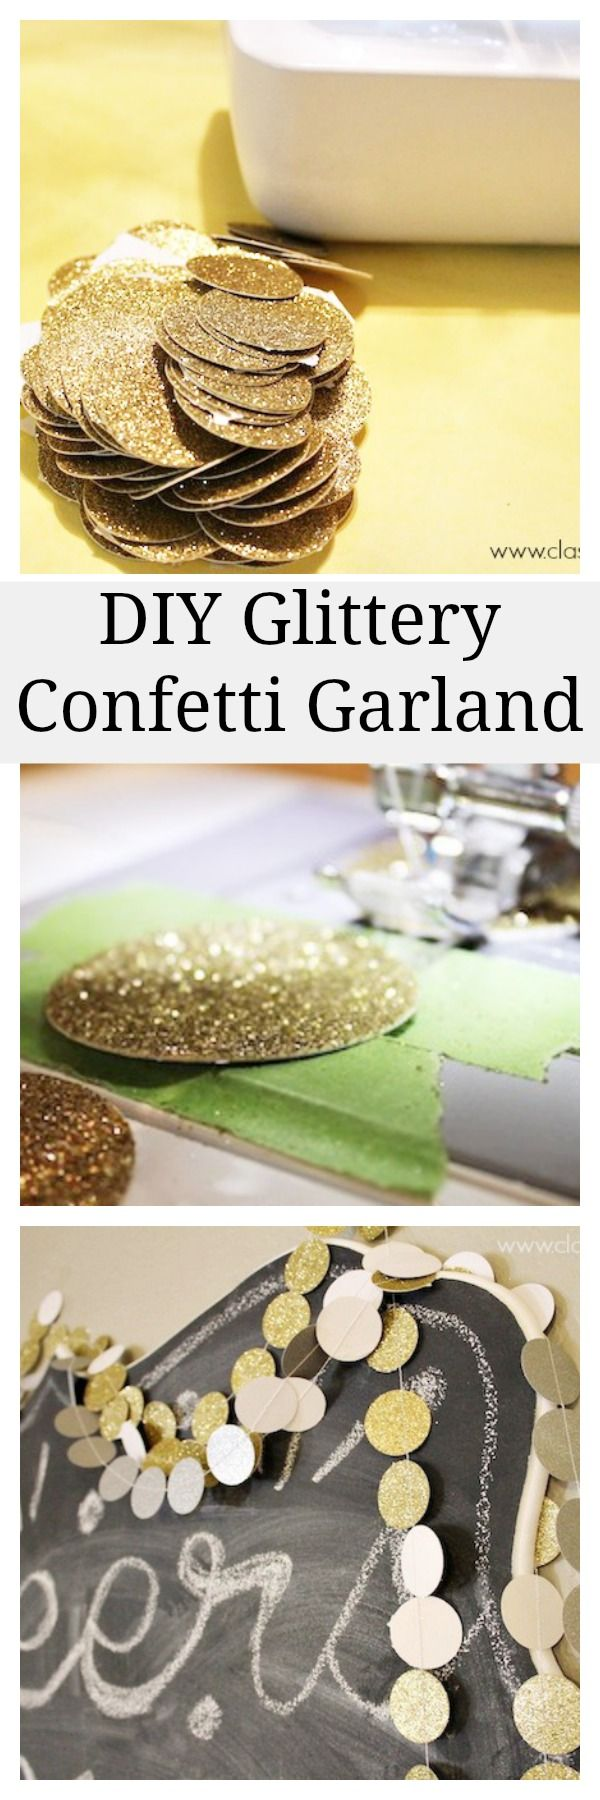 Diy Glittery Garland - great for New Year's Eve party decorations.